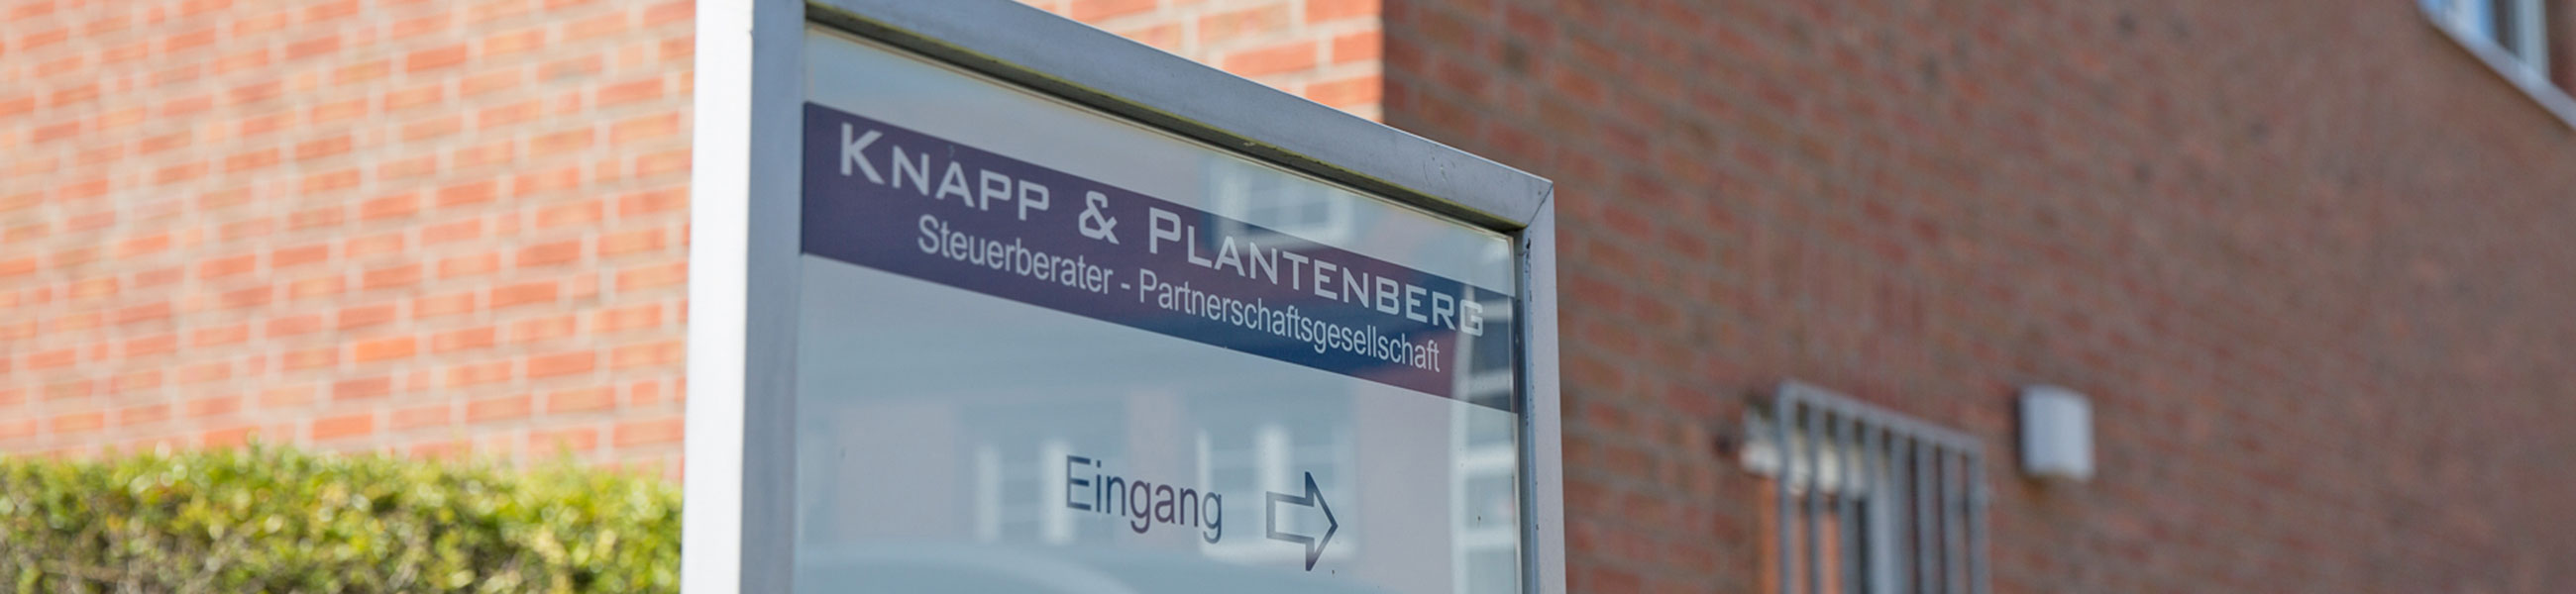 Knapp & Plantenberg Steuerberater in Ratingen